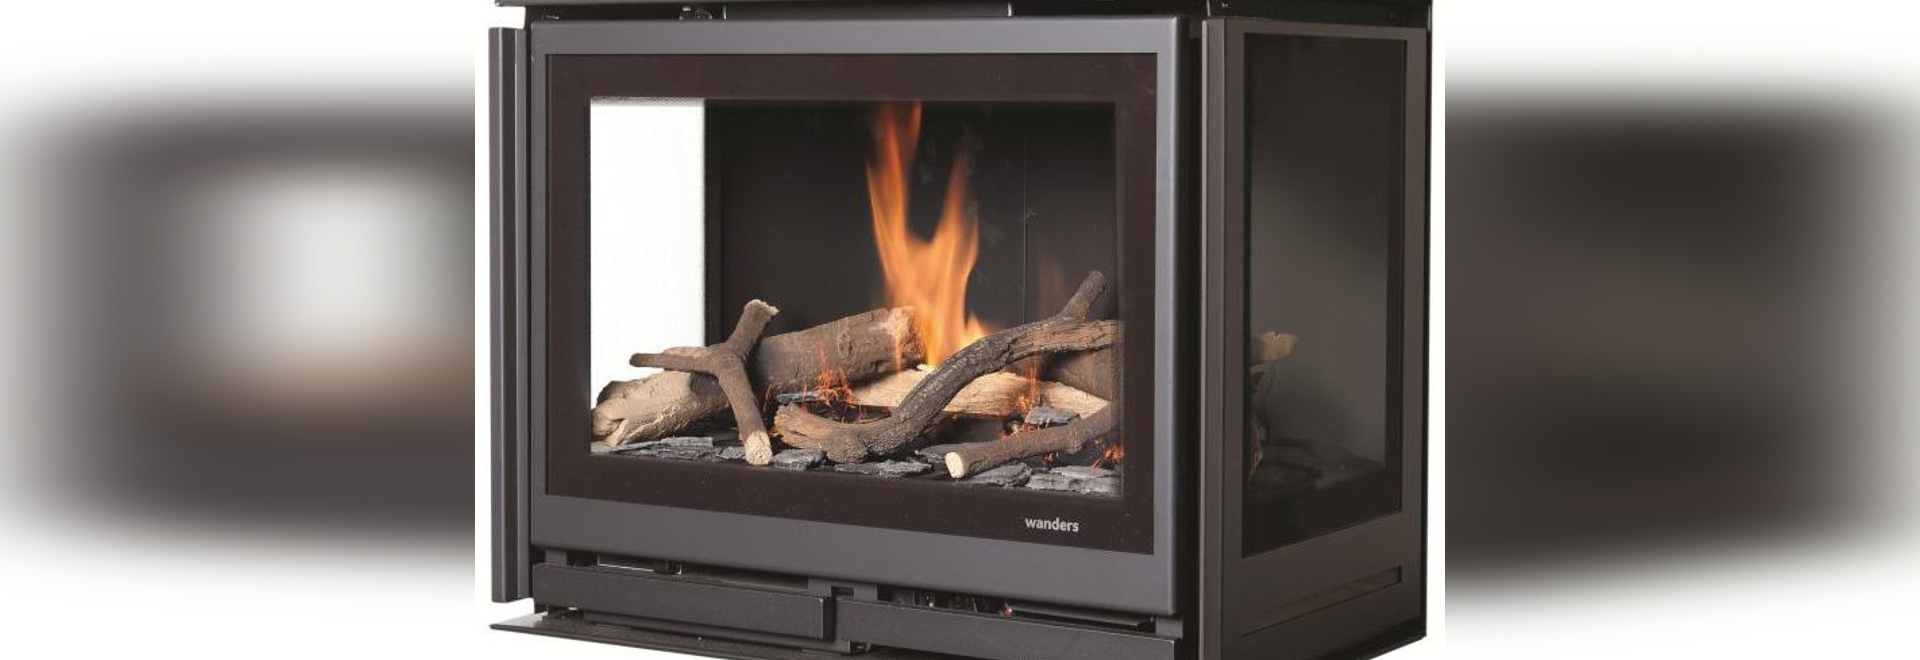 new gas fireplace insert by wanders fires u0026 stoves wanders